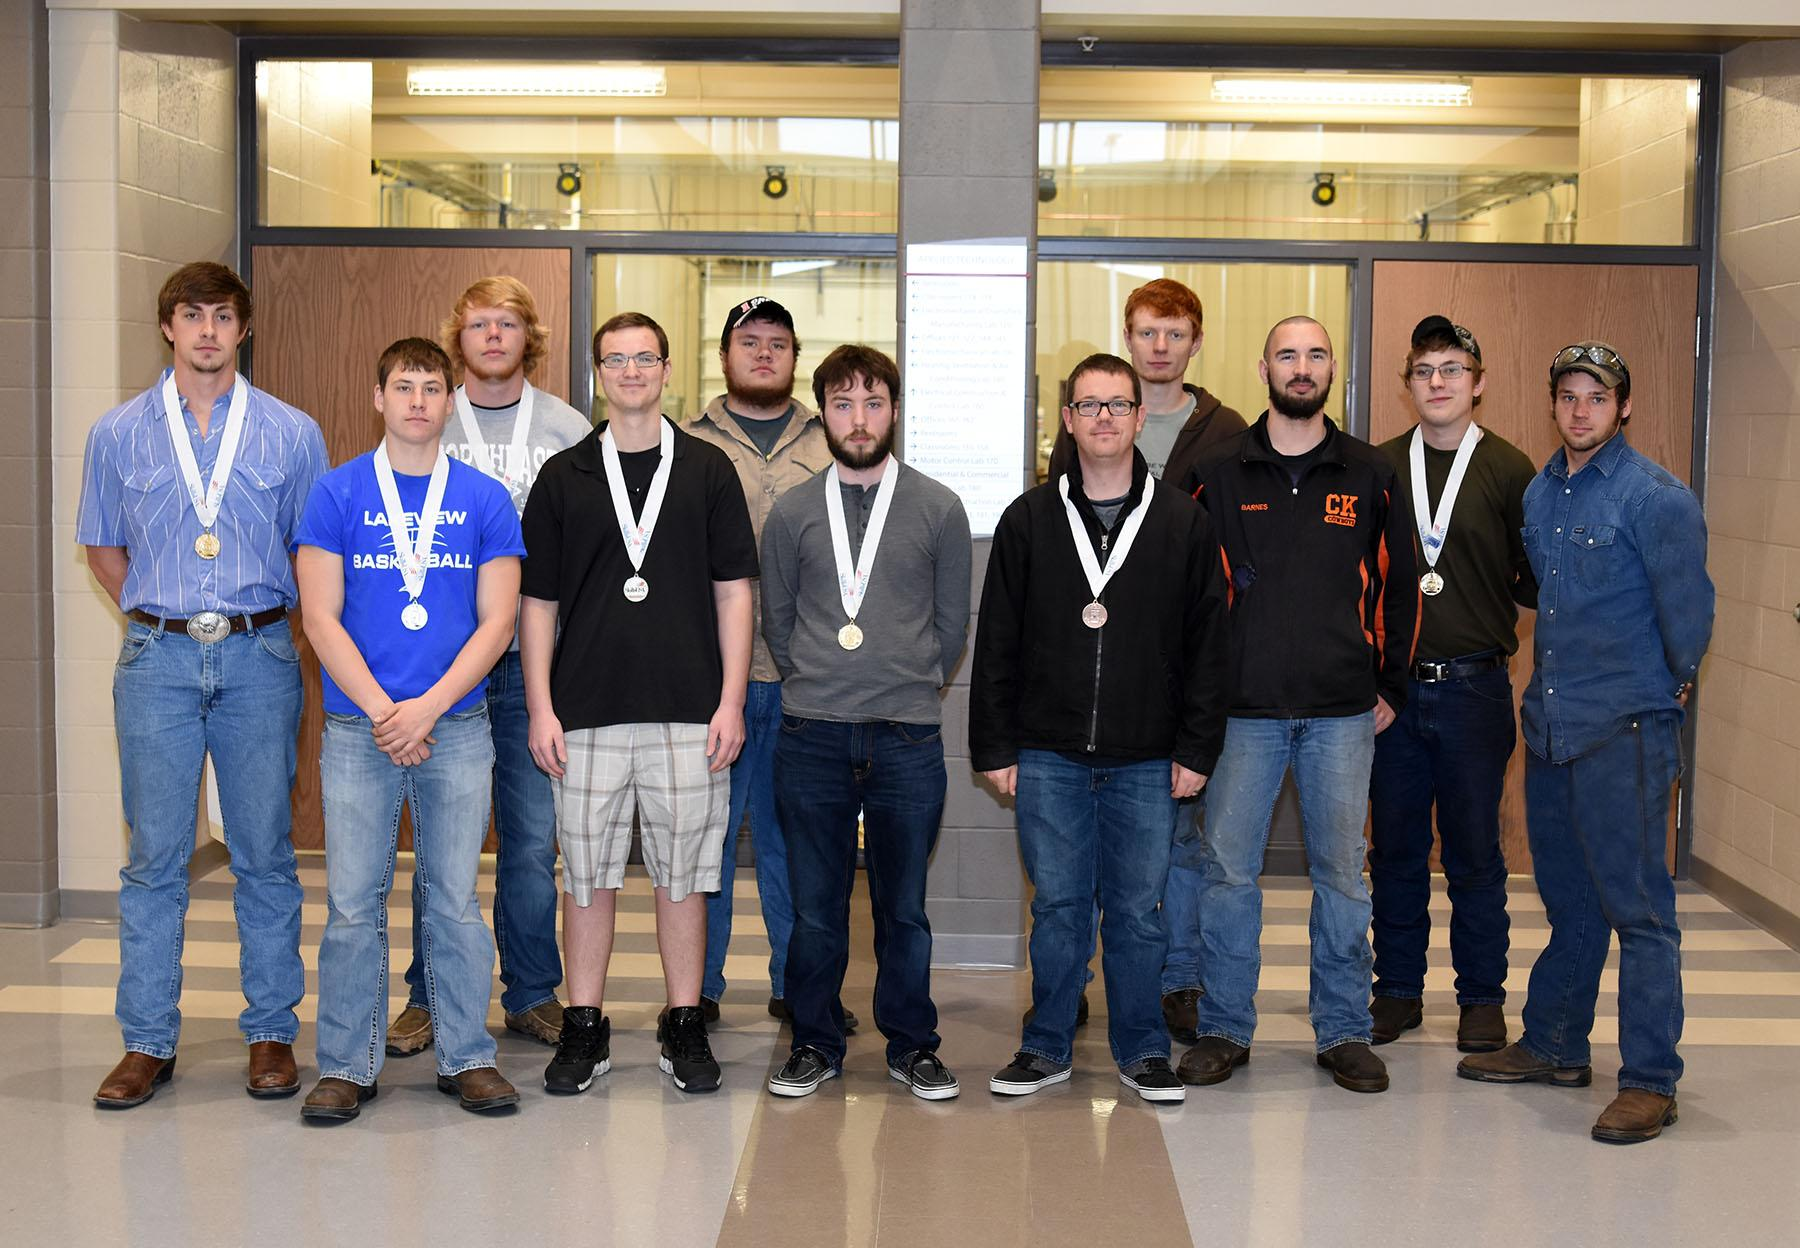 PHOTO CUTLINE – SkillsUSA Team  Northeast Community College's SkillsUSA Chapter was recognized as the state chapter that grew by the largest percentage of members in one year at the Nebraska SkillsUSA State Leadership and Skills Conference recently in Omaha. Pictured (from left) are James Buresh, Marcus Holmberg, Chase Orender, Jordan Zach, Trent Dolezal, Clint Jurgens, Tony Elder, Luke Kleinschmit, Morgan Barnes, Ian Folkers and Matthew Hilkemann. Buresh, Folkers, Jurgens and Orender were named state champions in their respective competitions of HVAC, diesel equipment technology, internetworking and sheet metal and have quailed for the national competition in Louisville, KY, in June. (Courtesy Photo)